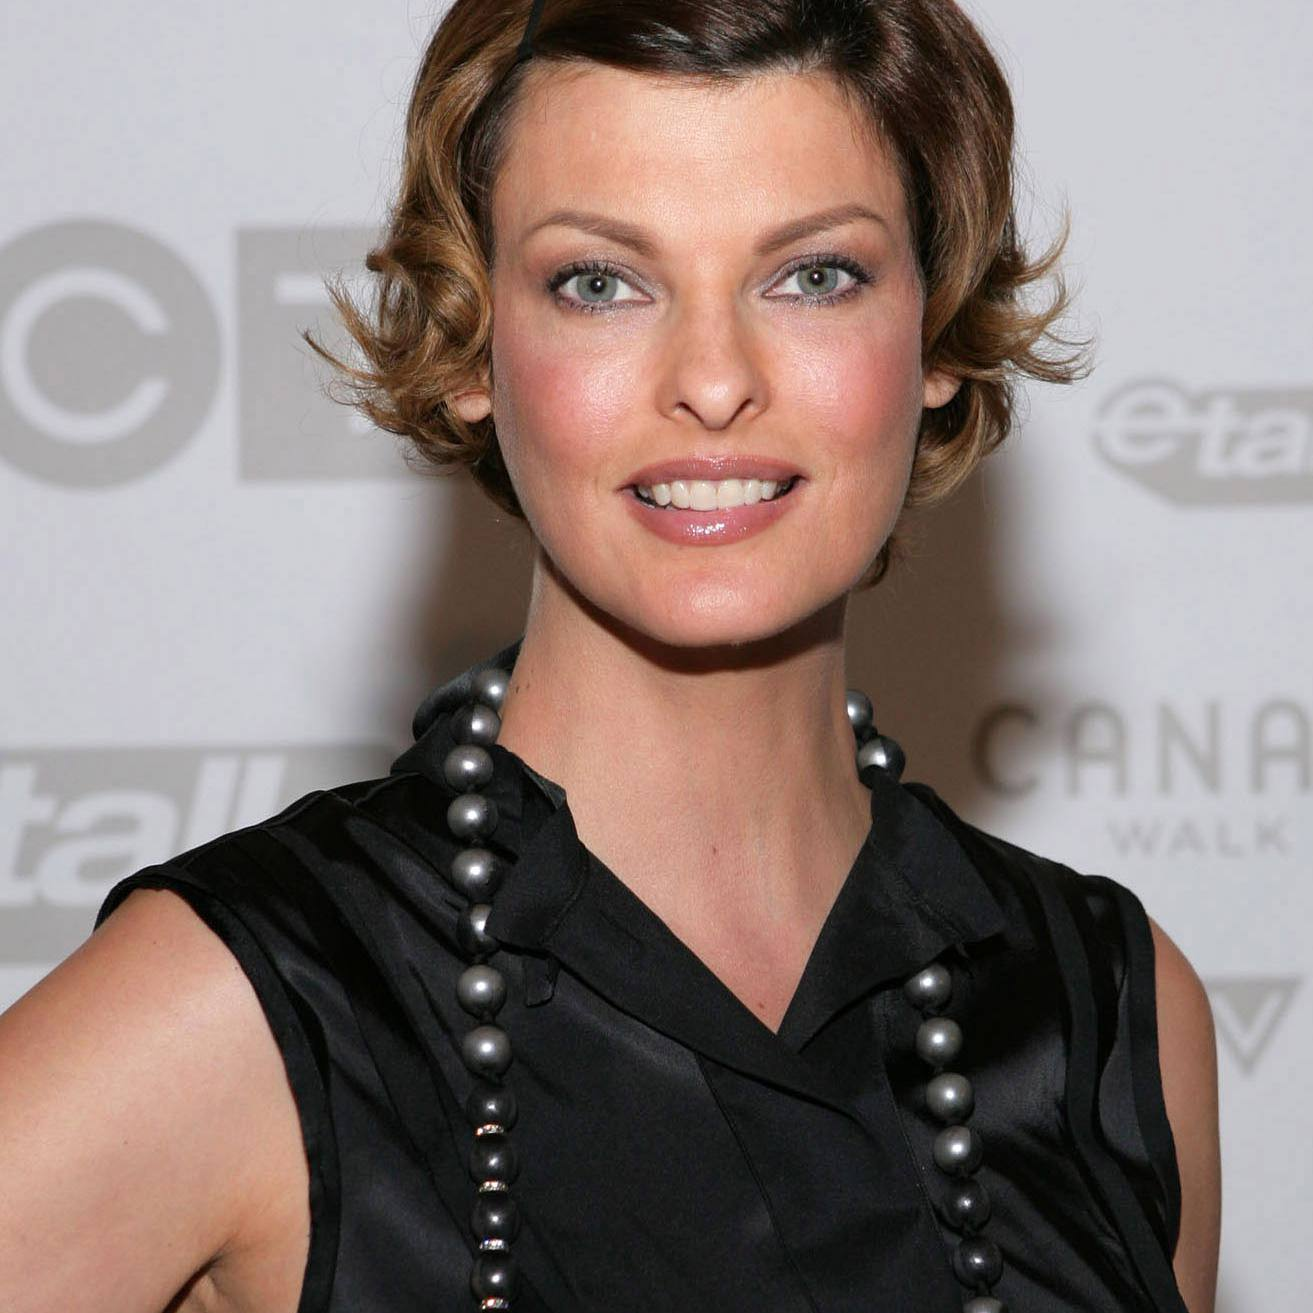 Linda Evangelista attends Canada's Walk of Fame Ball at the Sheraton on September 6, 2008 in Toronto, Canada.